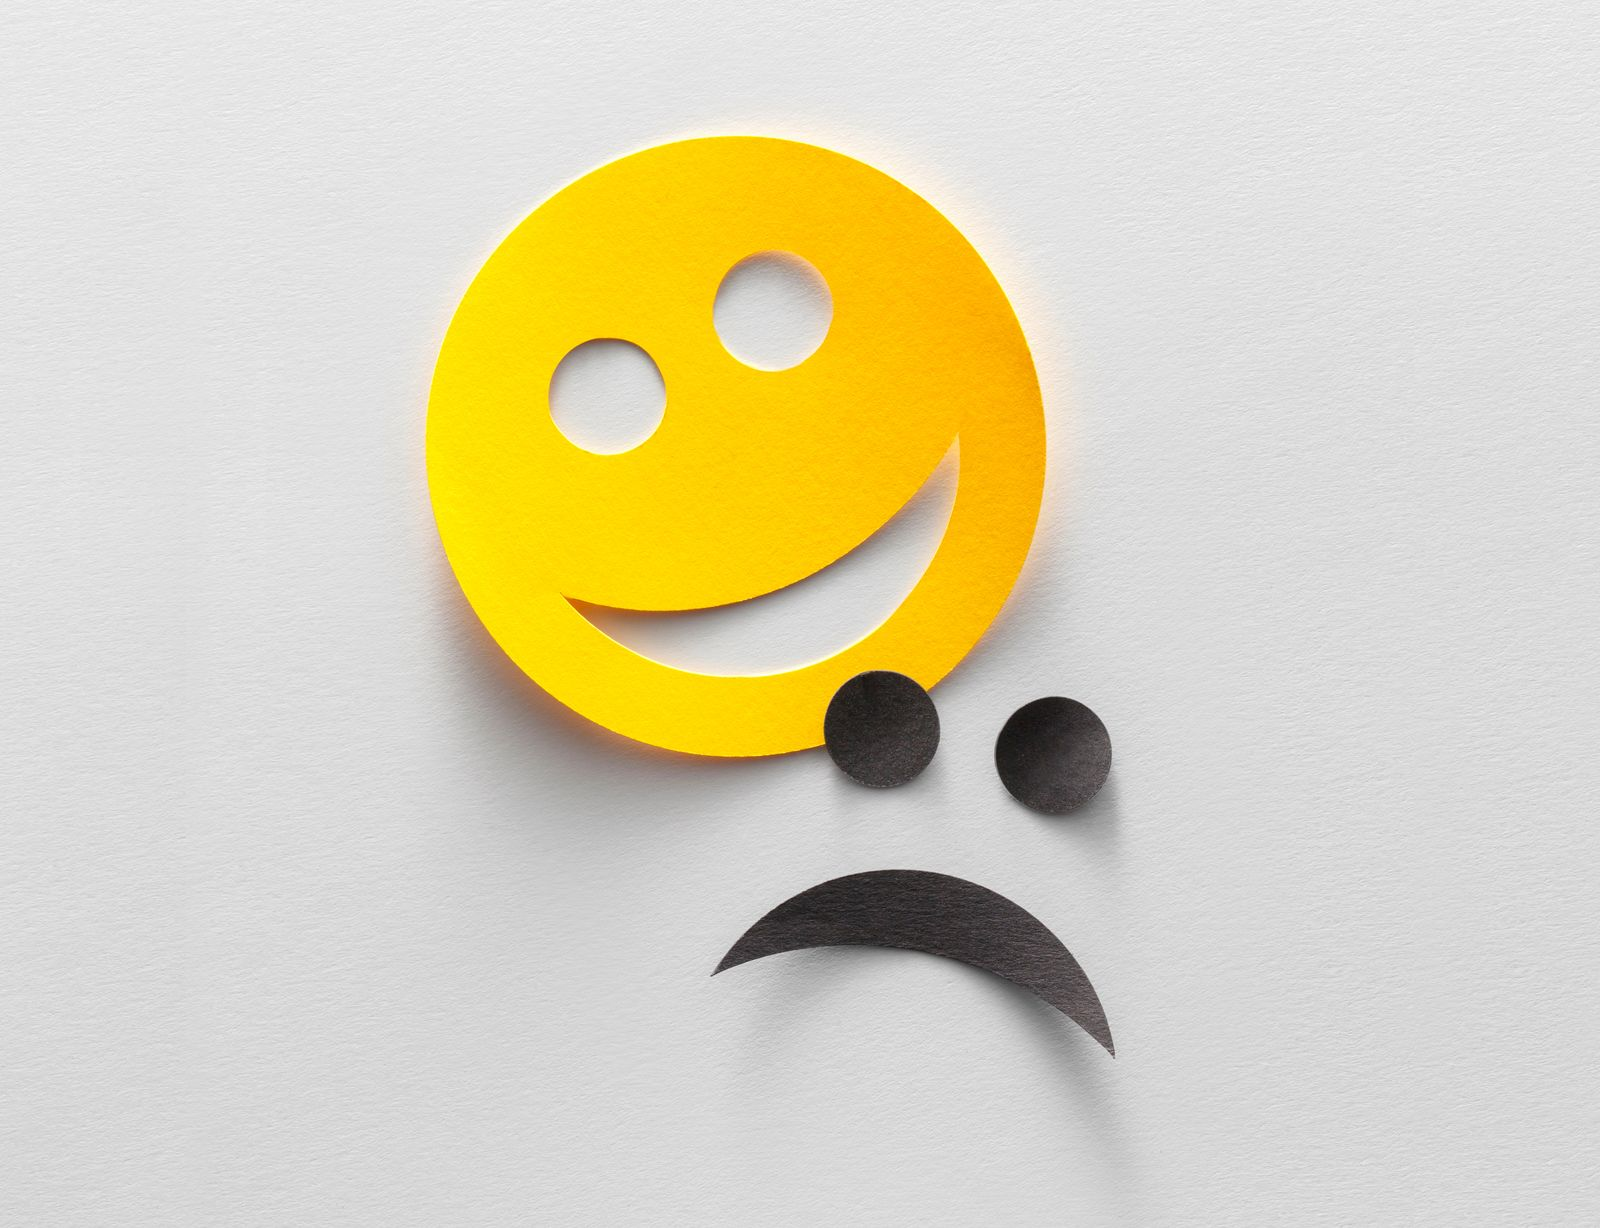 Happy and sad emoji smiley faces (or comedy and tragedy theater mask)